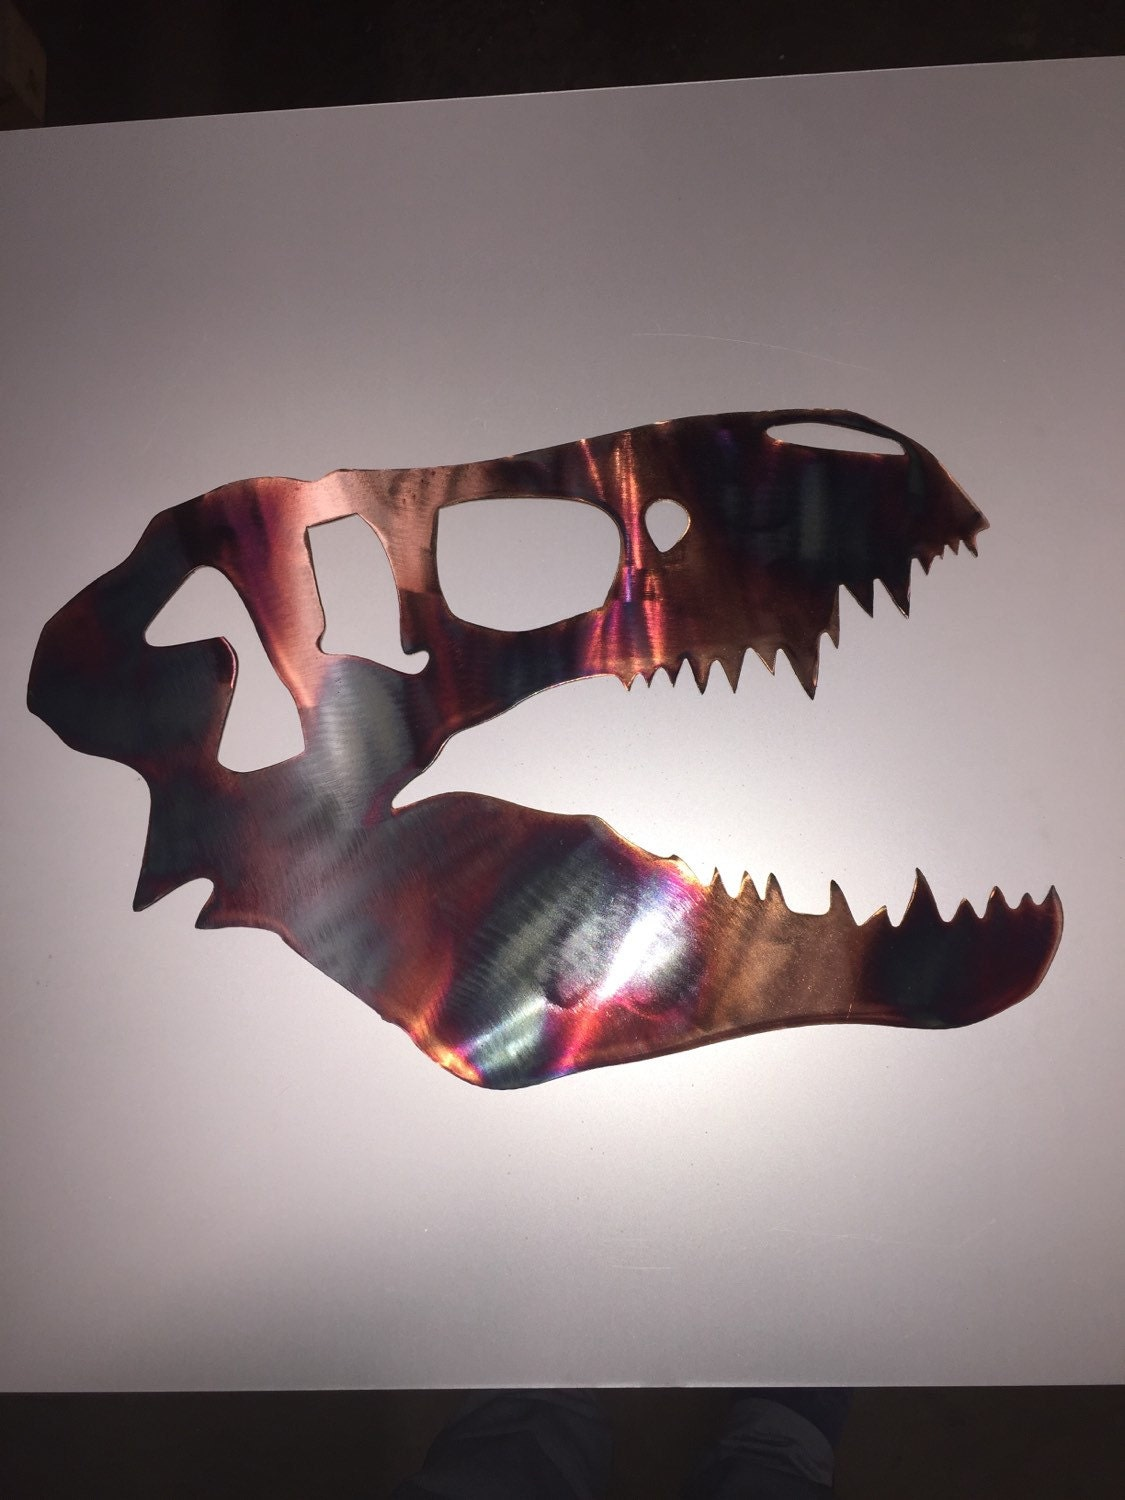 Dinosaur metal wall art nursery decor decoration sign kids for T rex bedroom decor